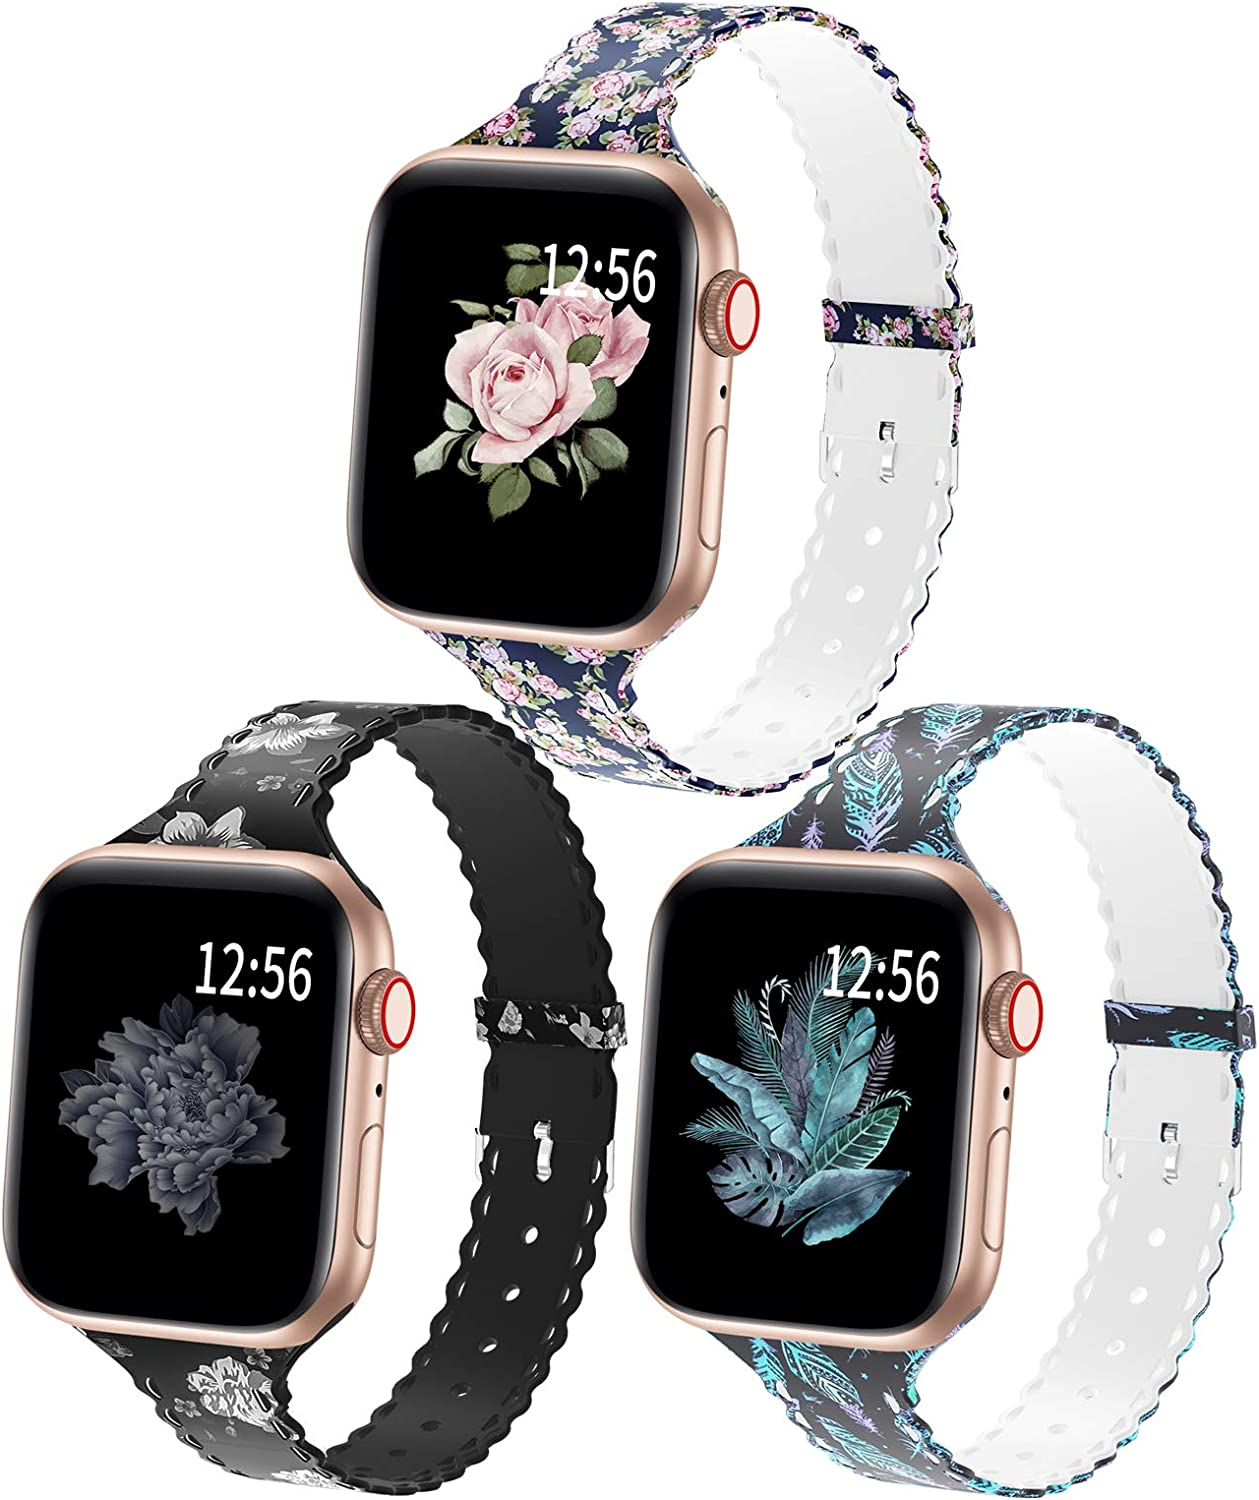 Bagoplus Compatible with Apple Watch Bands 38mm 40mm 42mm 44mm, Floral Soft Silicone iWatch Bands 38mm 40mm 42mm 44mm Women Girl Compatible for iWatch Series 6/5/4/3/2/1/SE